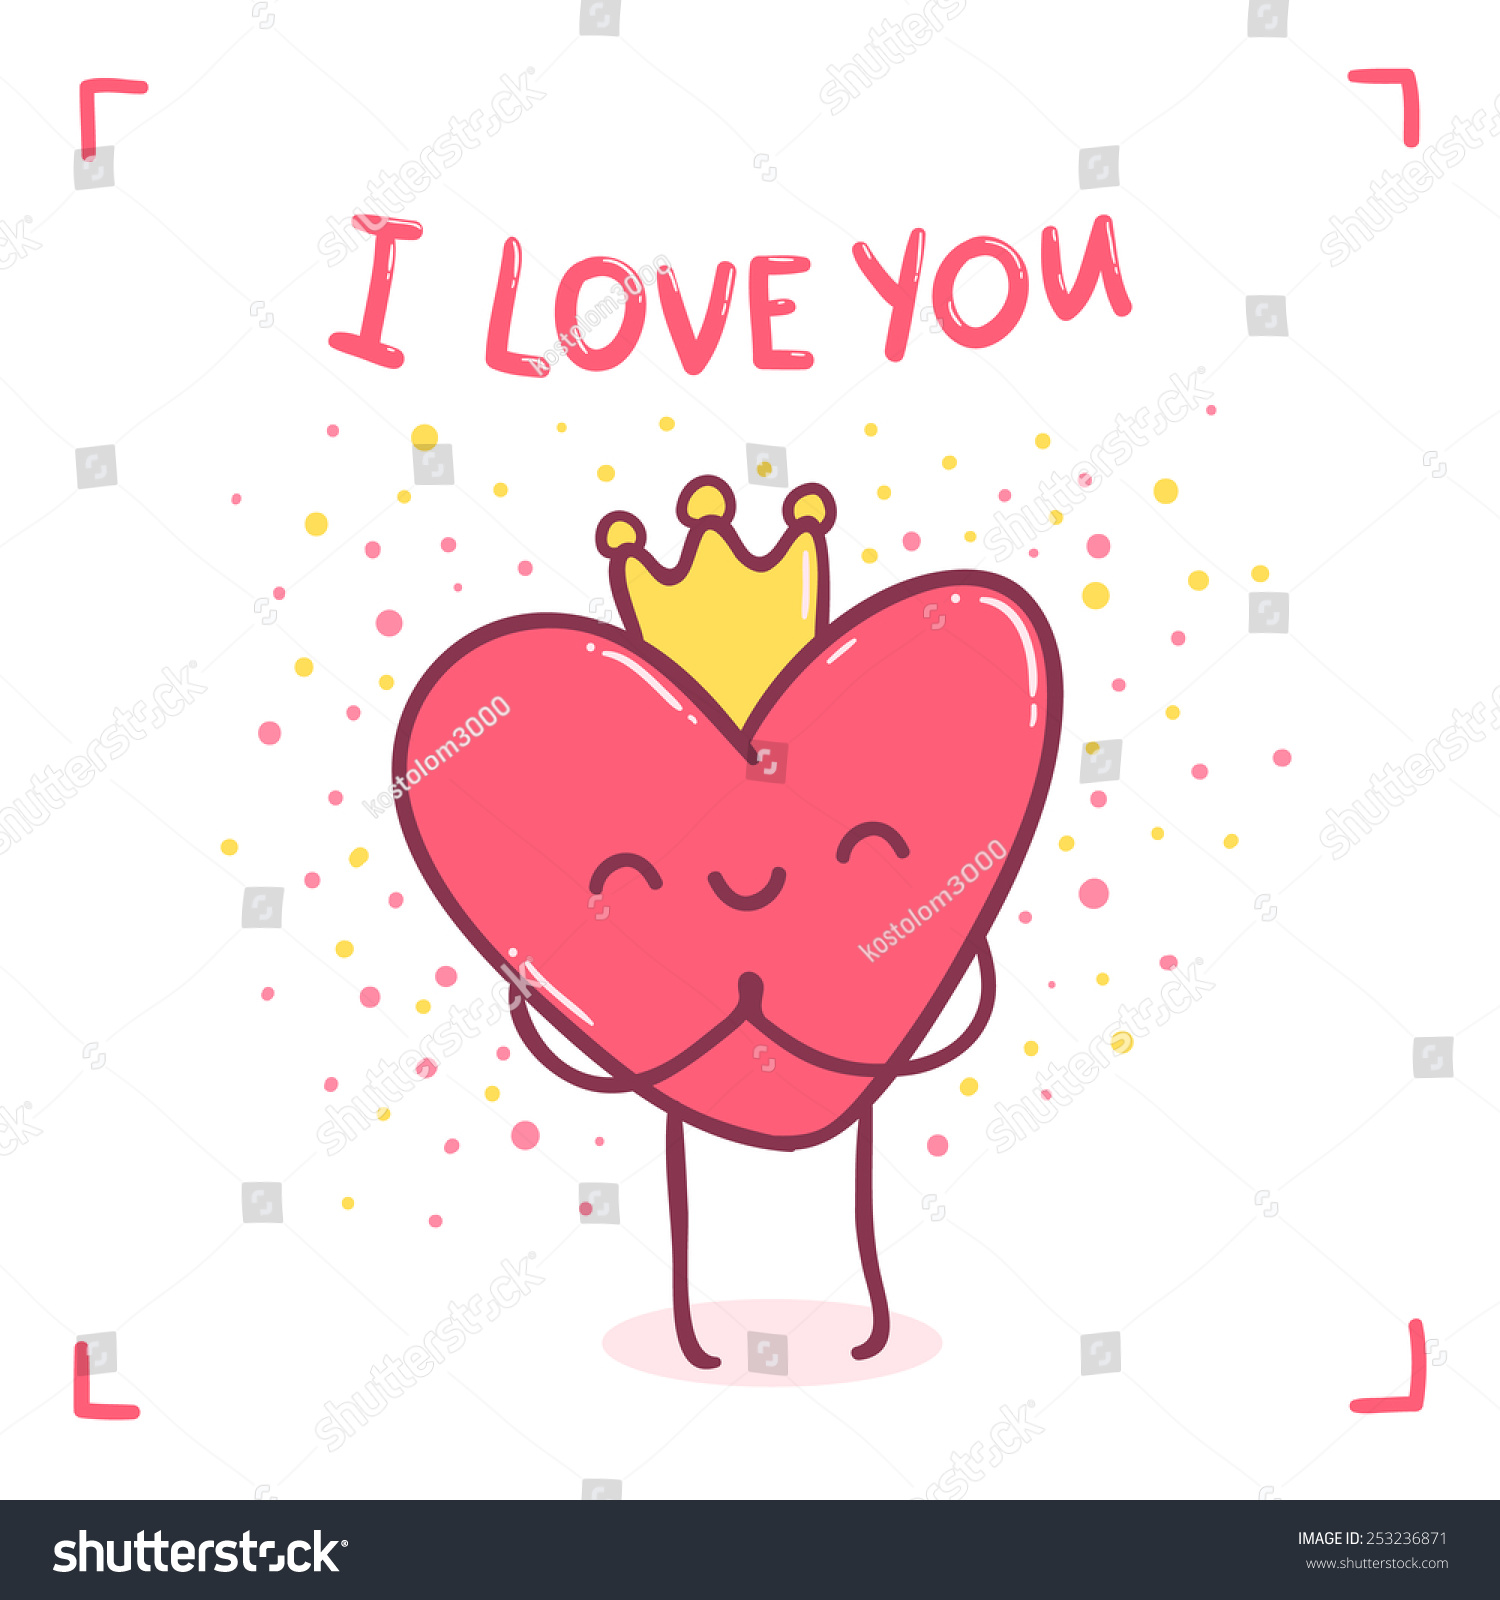 Cute Cartoon Heart Character Love You Stock Vector ...